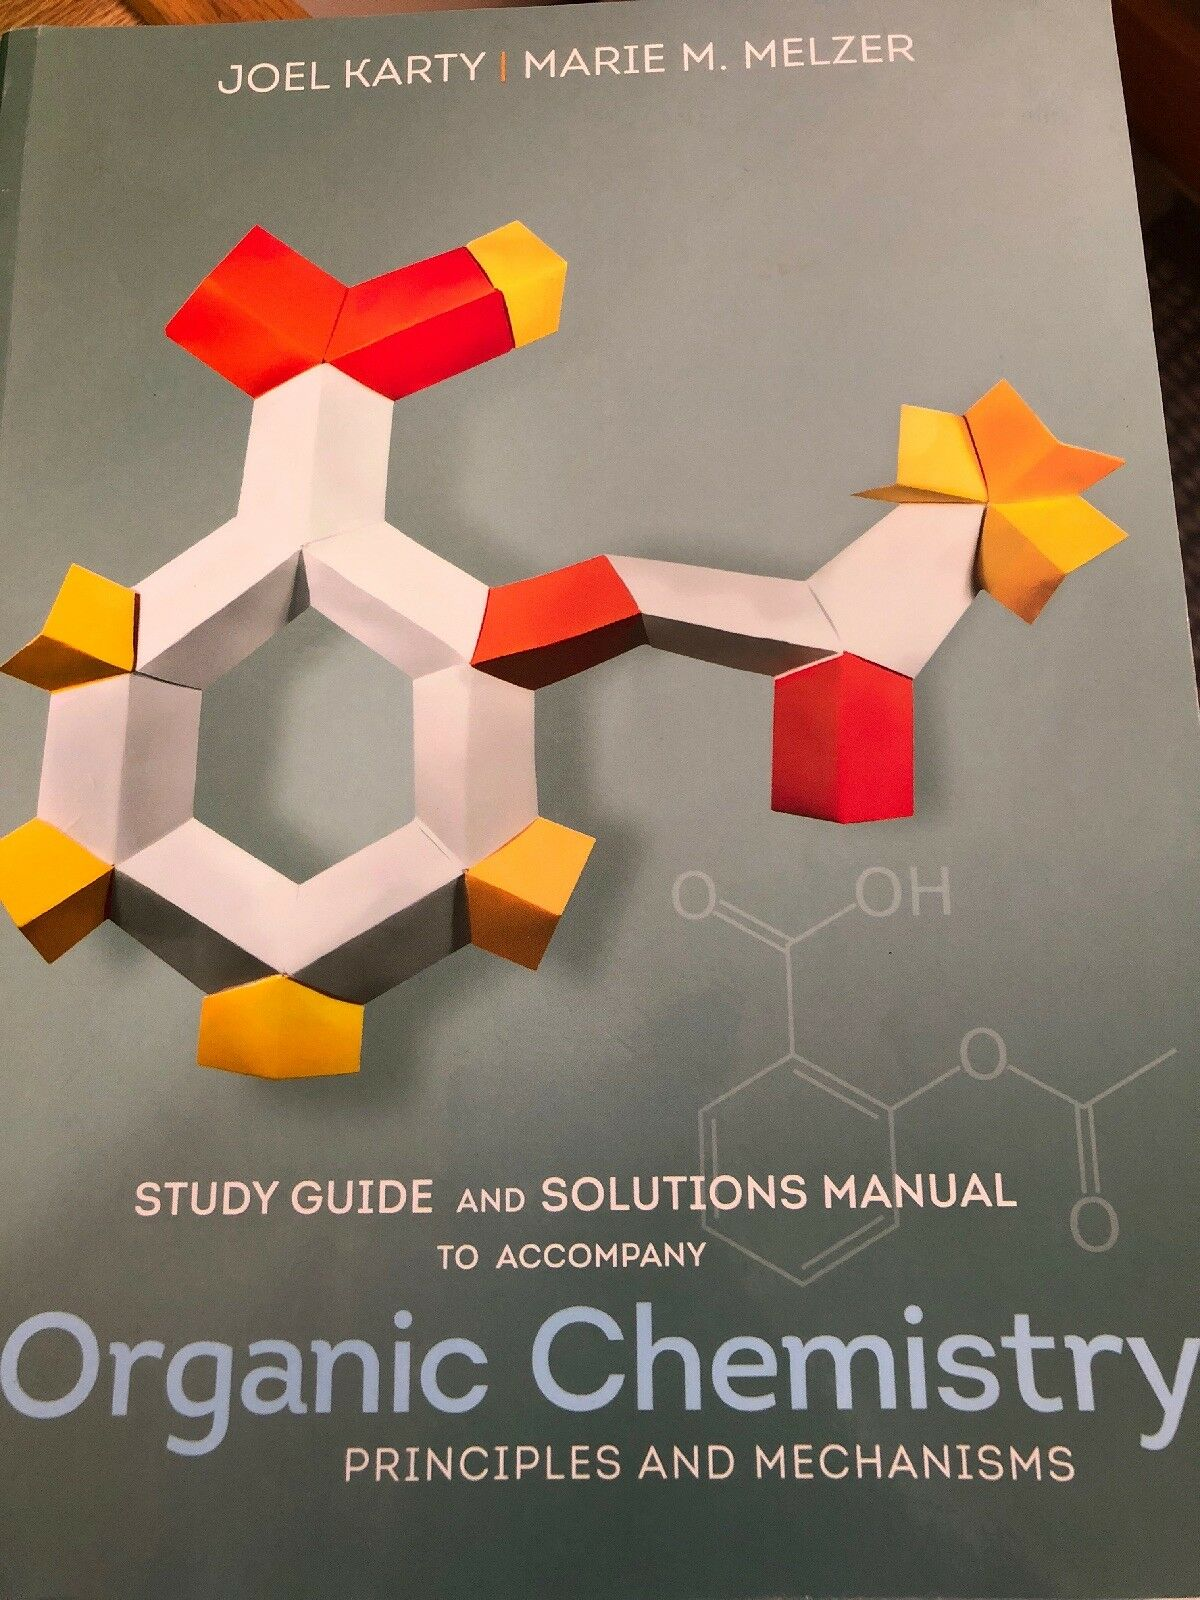 Study Guide and Solutions Manual : For Organic Chemistry: Principles and  Mechanisms by Joel Karty and Marie Melzer (2014, Paperback) | eBay